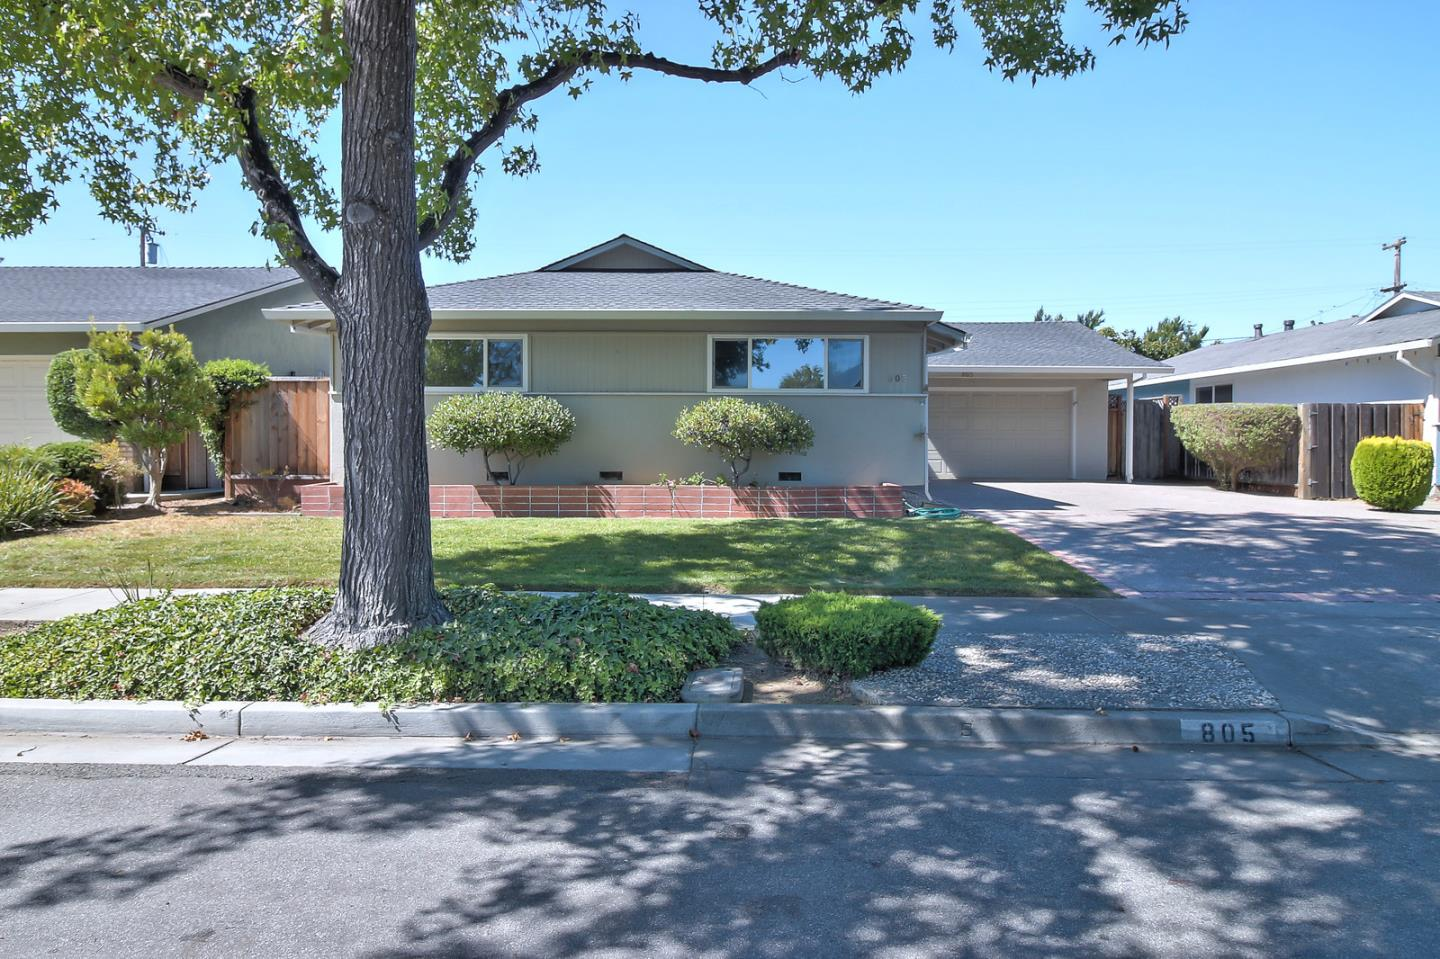 Single Family Home for Sale at 805 Fife Way Sunnyvale, California 94087 United States